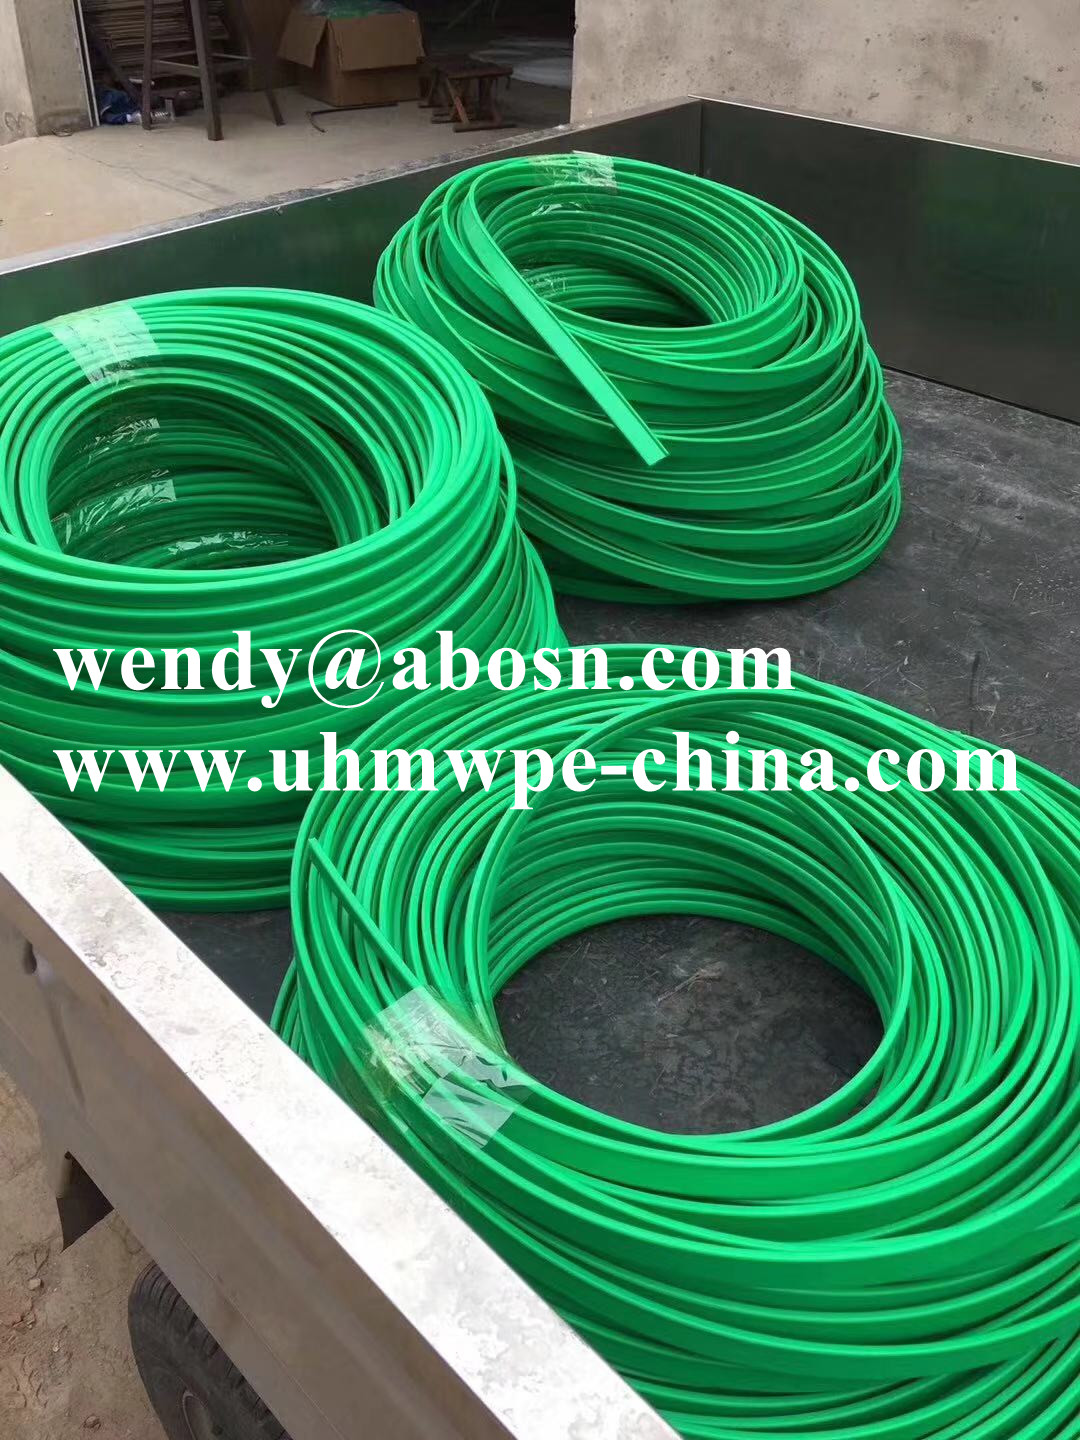 UHMWPE Profiles Wear Chain Guide